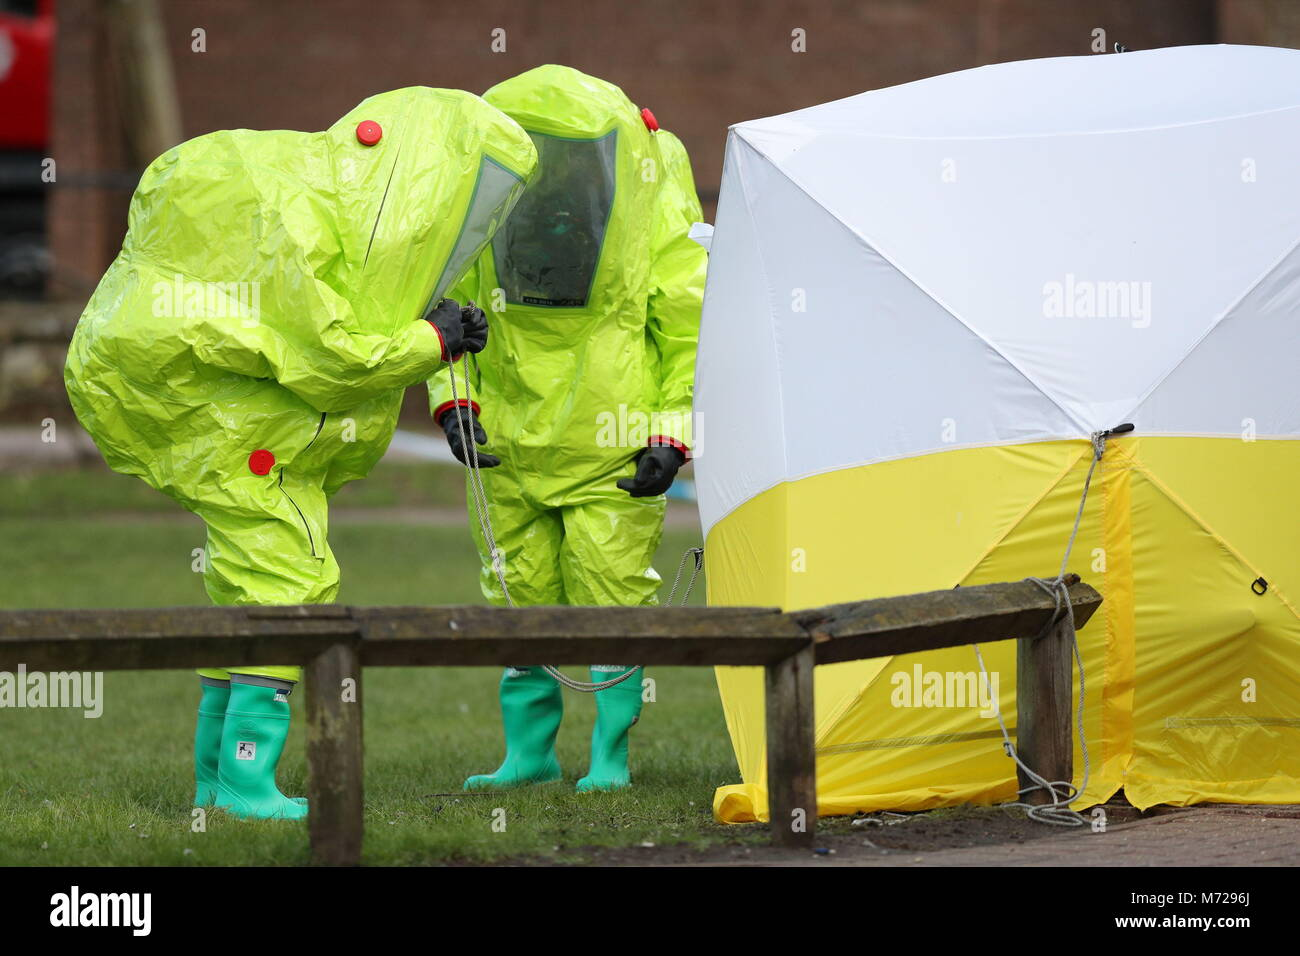 Personnel in hazmat suits work to secure a tent covering a bench in the Maltings shopping centre in Salisbury where former Russian double agent Sergei ... & Personnel in hazmat suits work to secure a tent covering a bench in ...